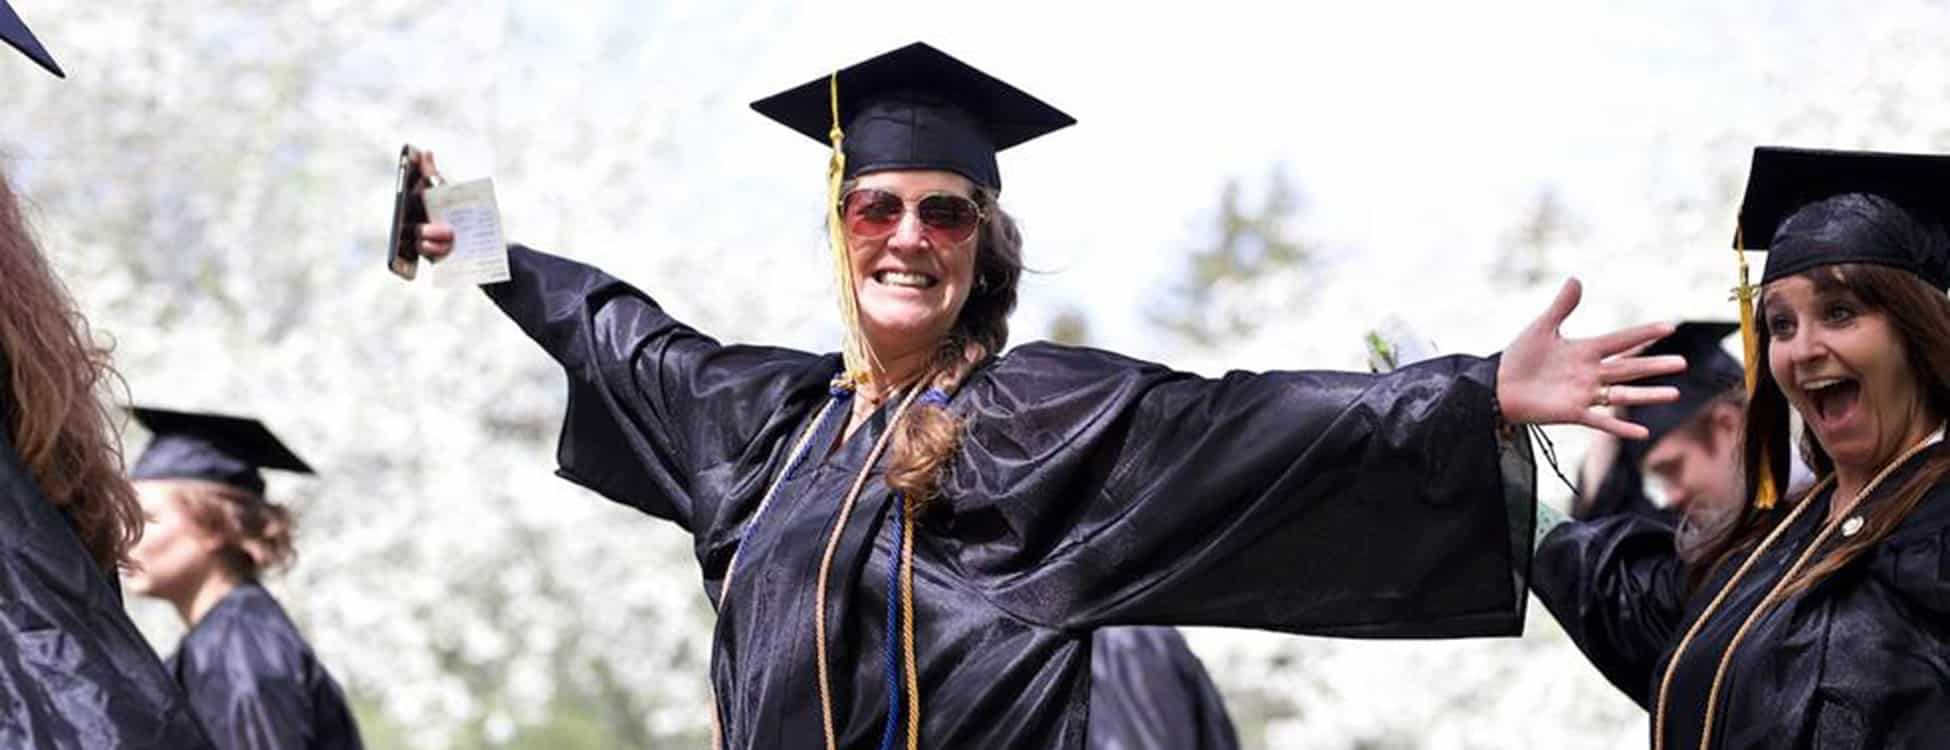 commencement, graduation, happy, smiling, female student